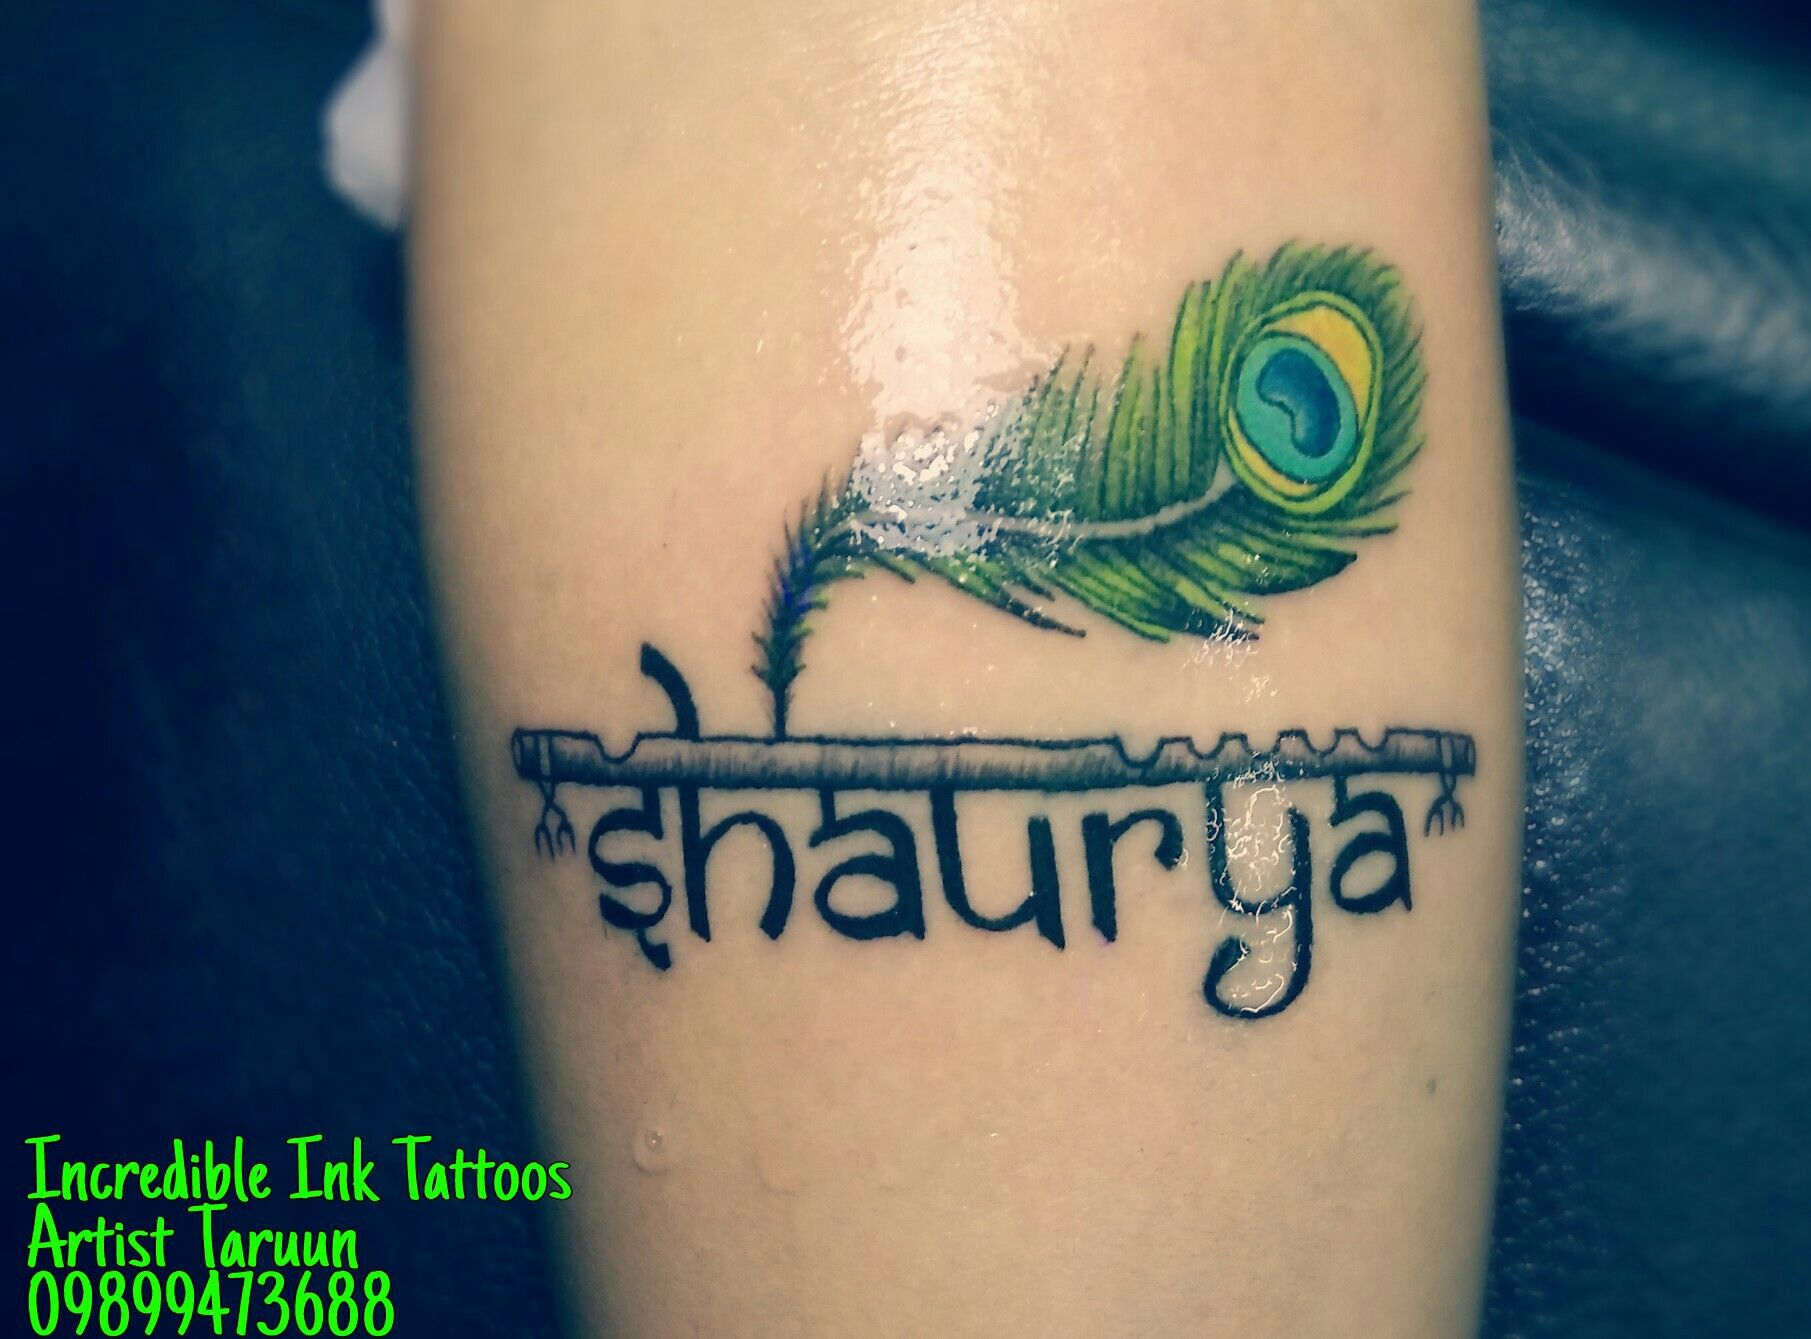 shaurya name tattoo incredible ink tattoos and tattoo training centre pinterest tattoo. Black Bedroom Furniture Sets. Home Design Ideas